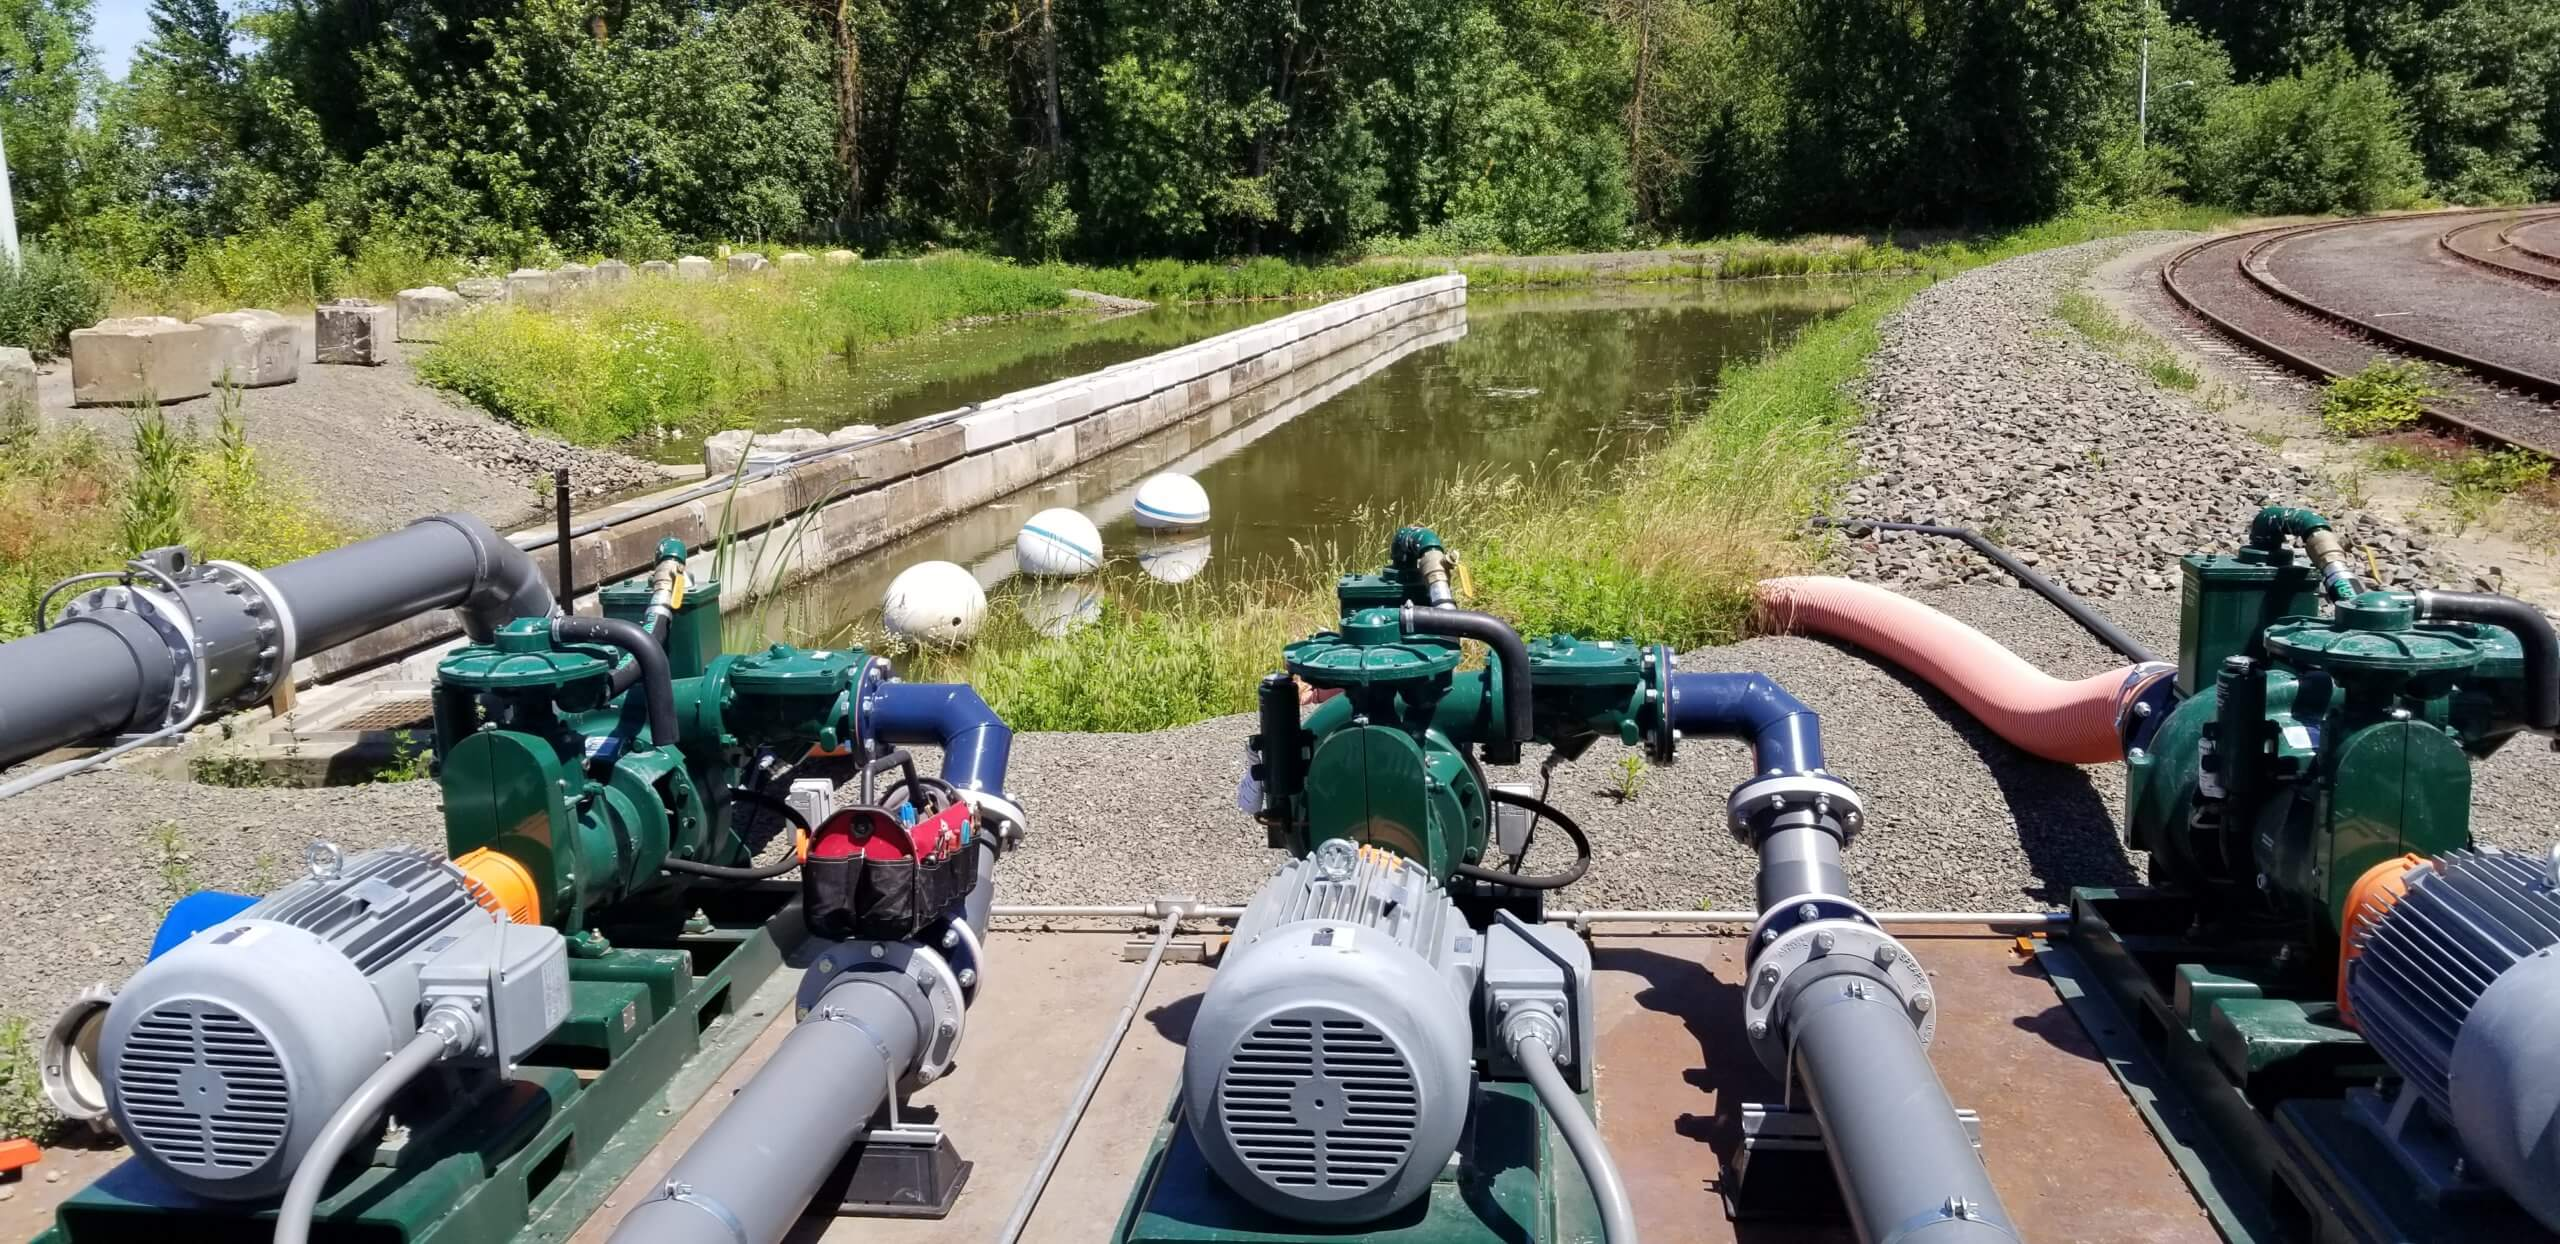 Centrifugal pumps drawing water from a pond for water treatment